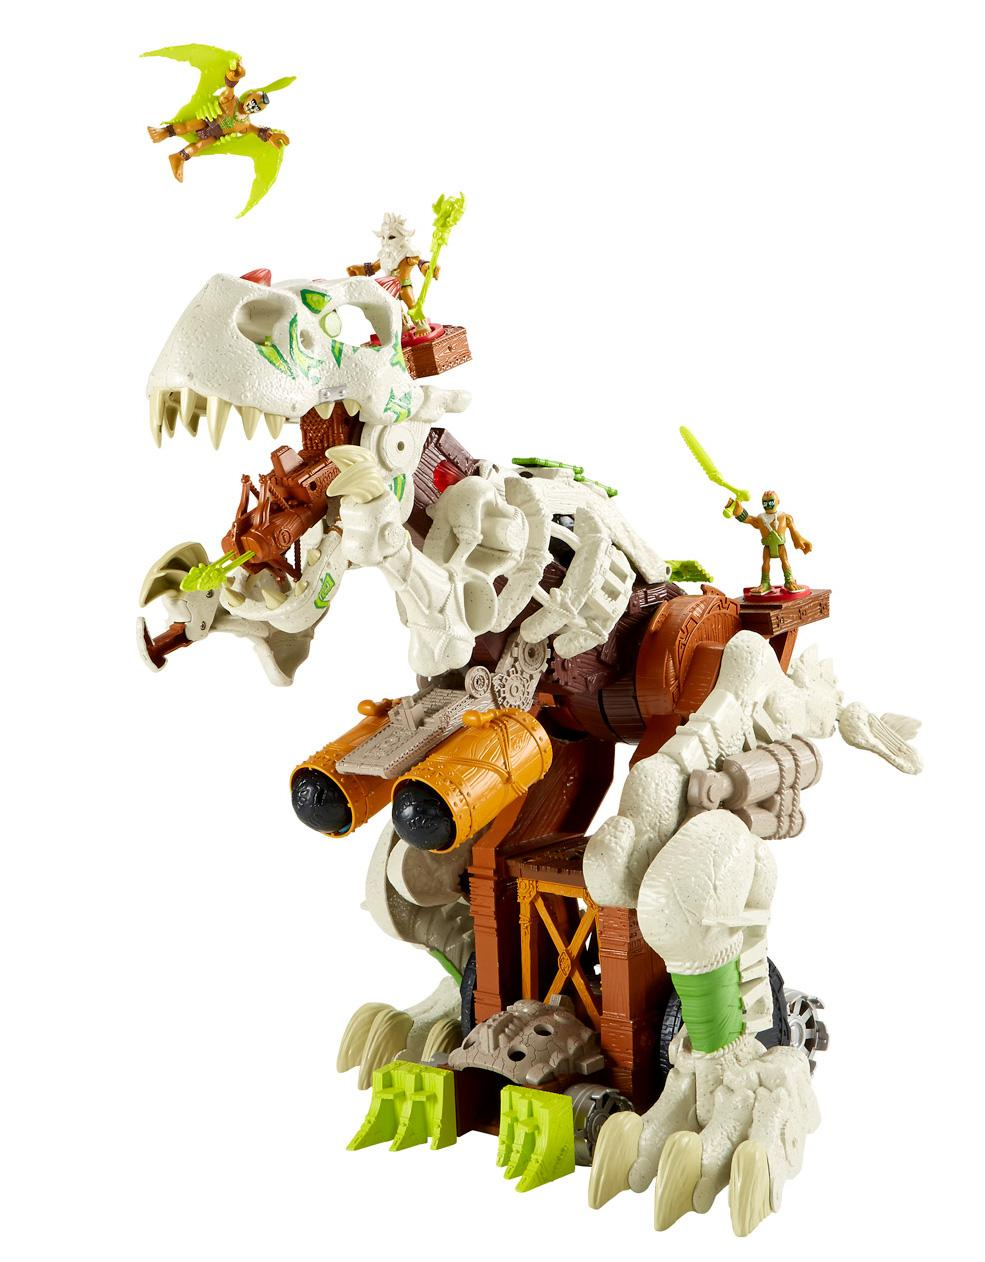 Amazon.com: Fisher-Price Imaginext Ultra T-Rex: Toys & Games